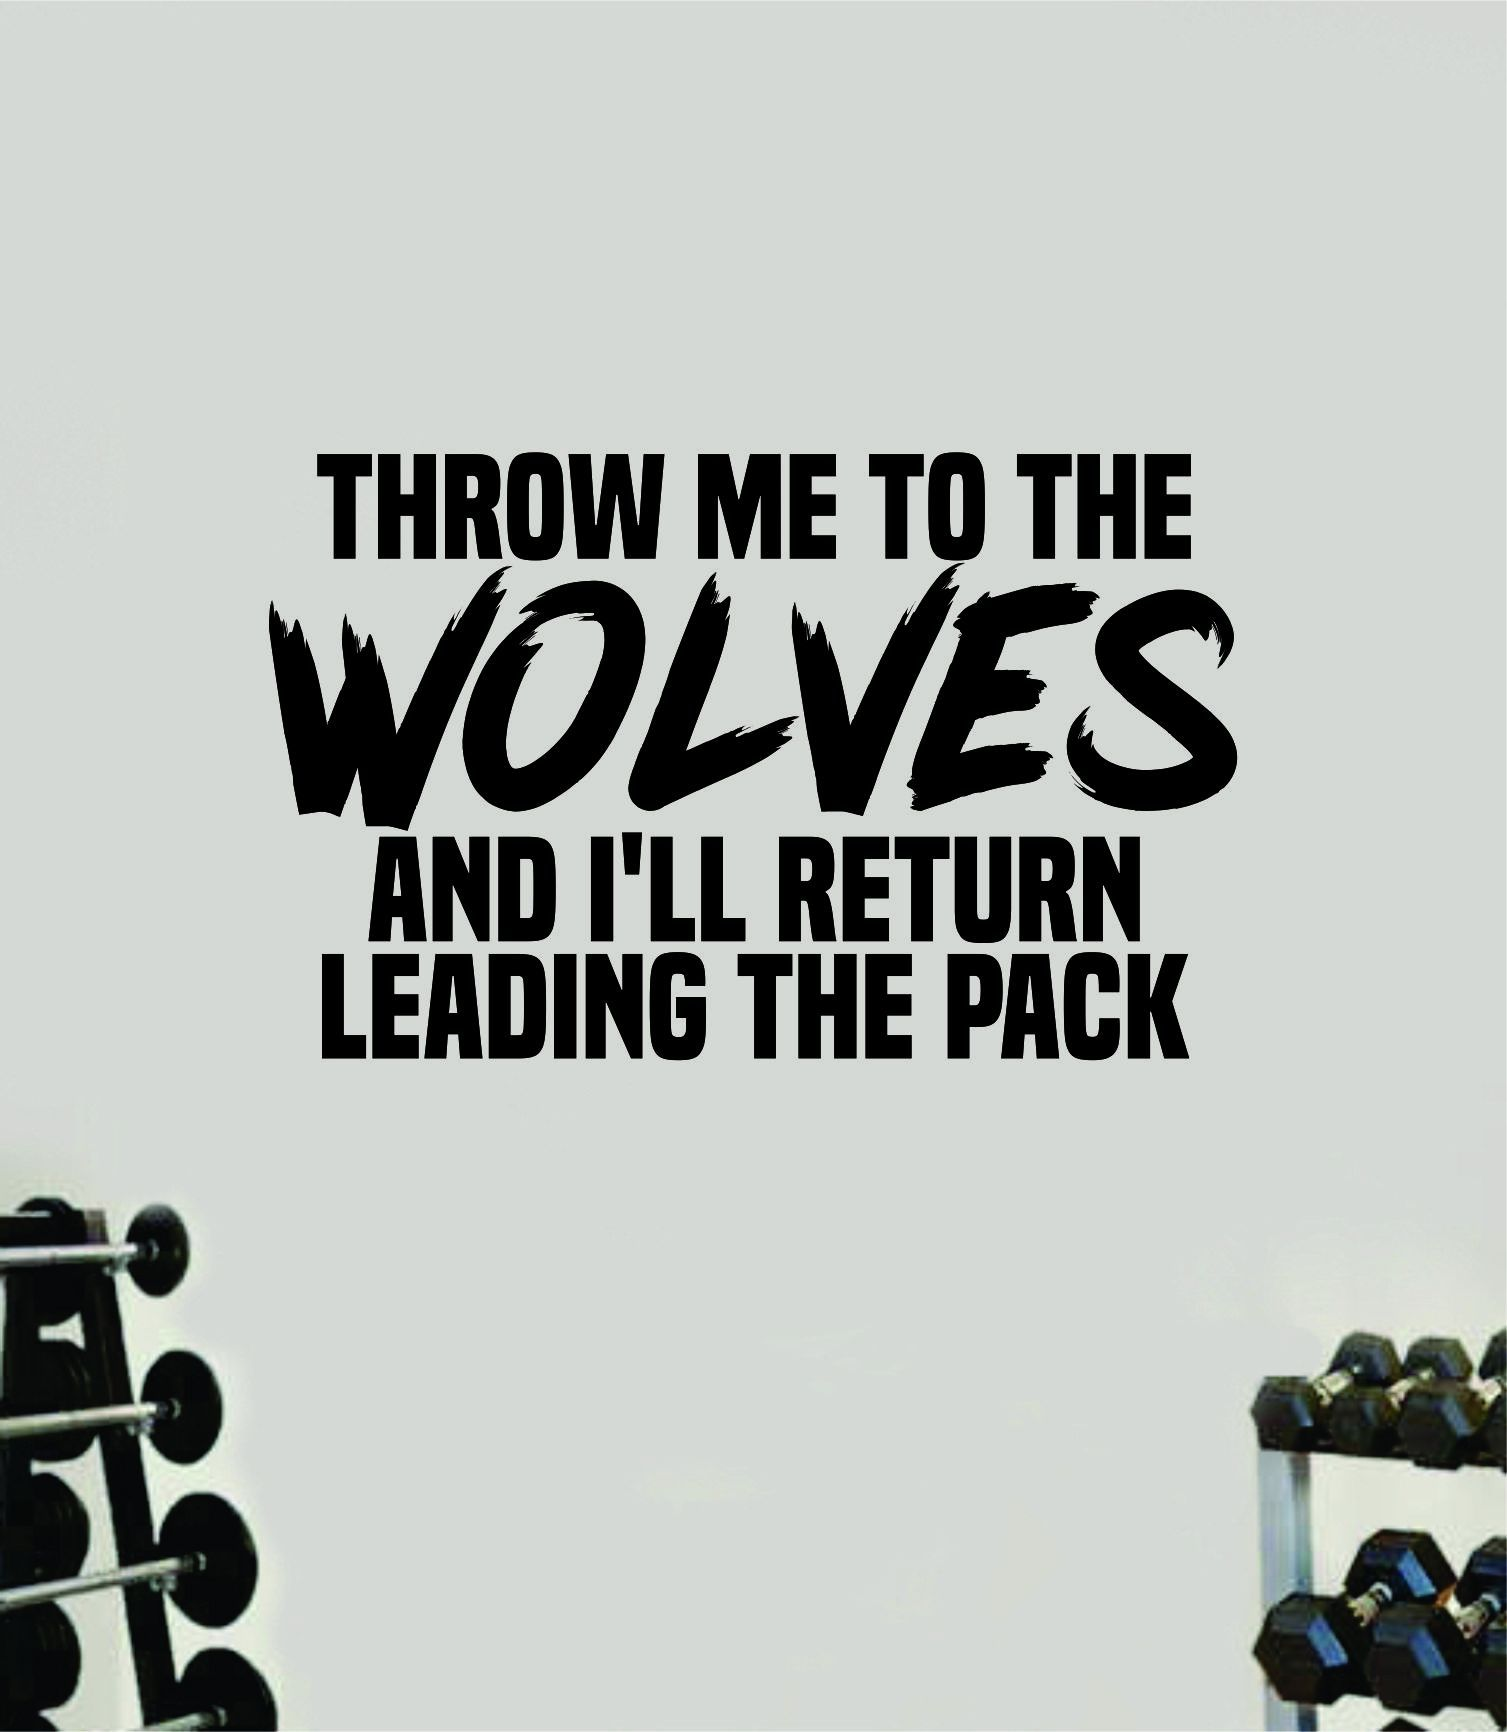 Throw Me to the Wolves Quote Wall Decal Sticker Vinyl Art Wall Bedroom Room Home Decor Inspirational Motivational Sports Lift Gym Fitness Girls Train Beast - green